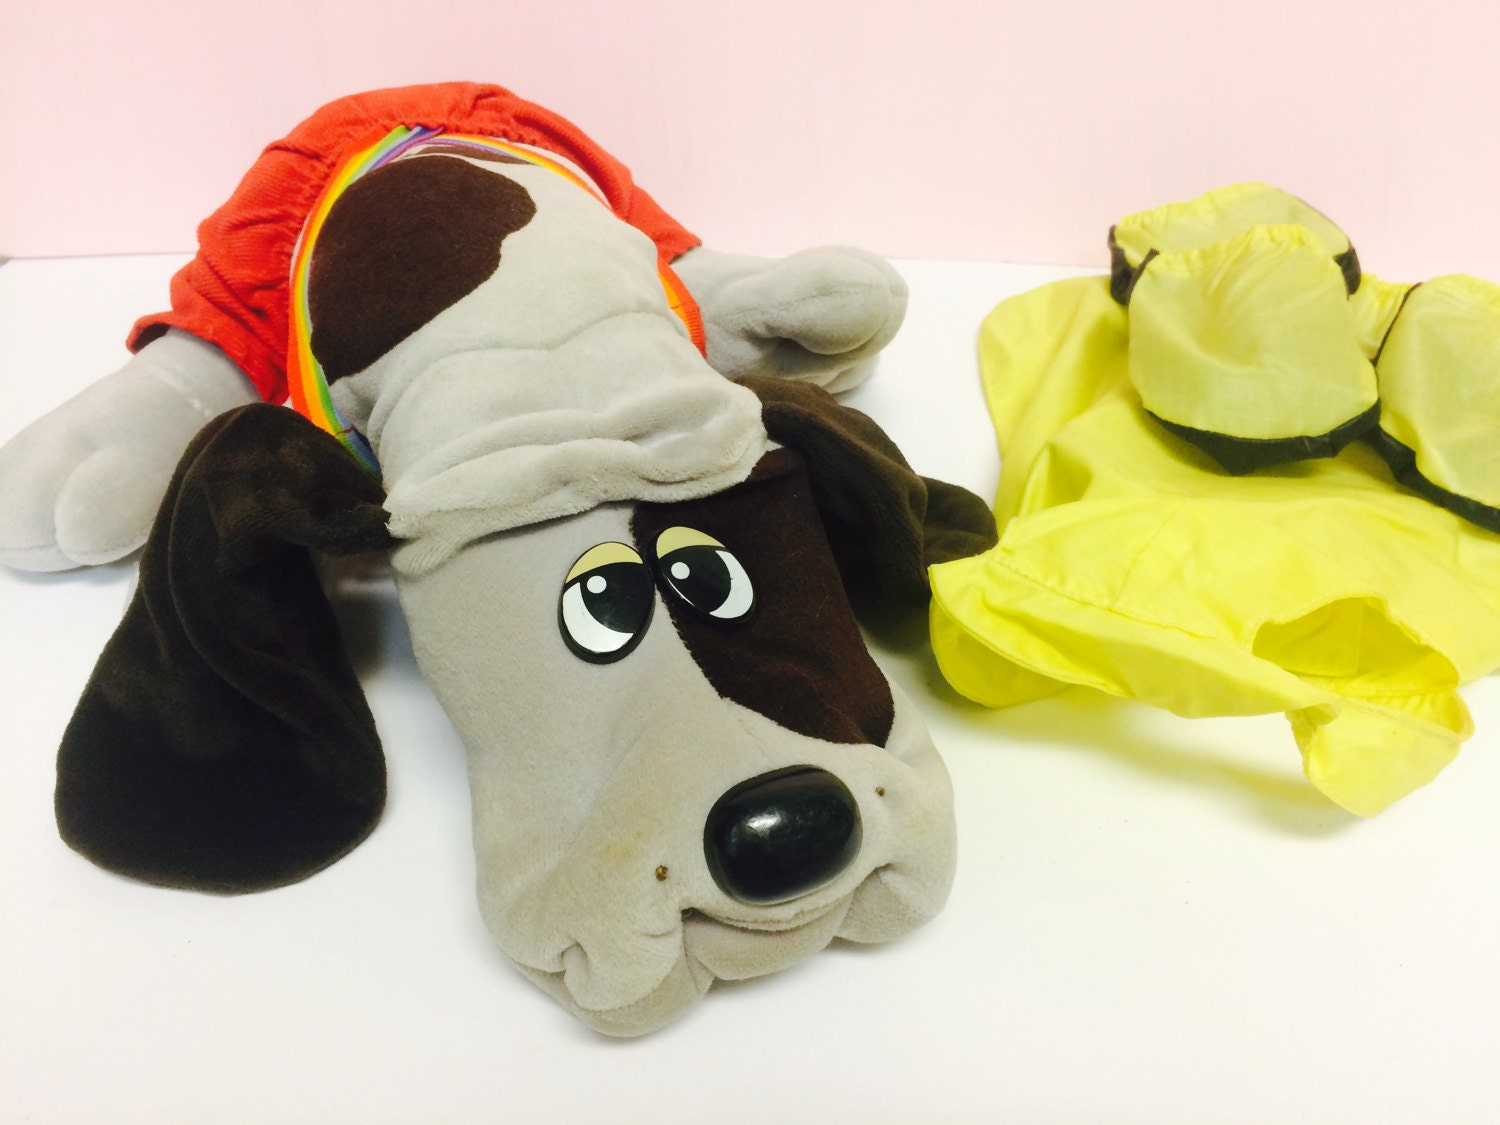 Vintage Pound Puppy Tonka Pound Puppies Clothes 1980s Toys